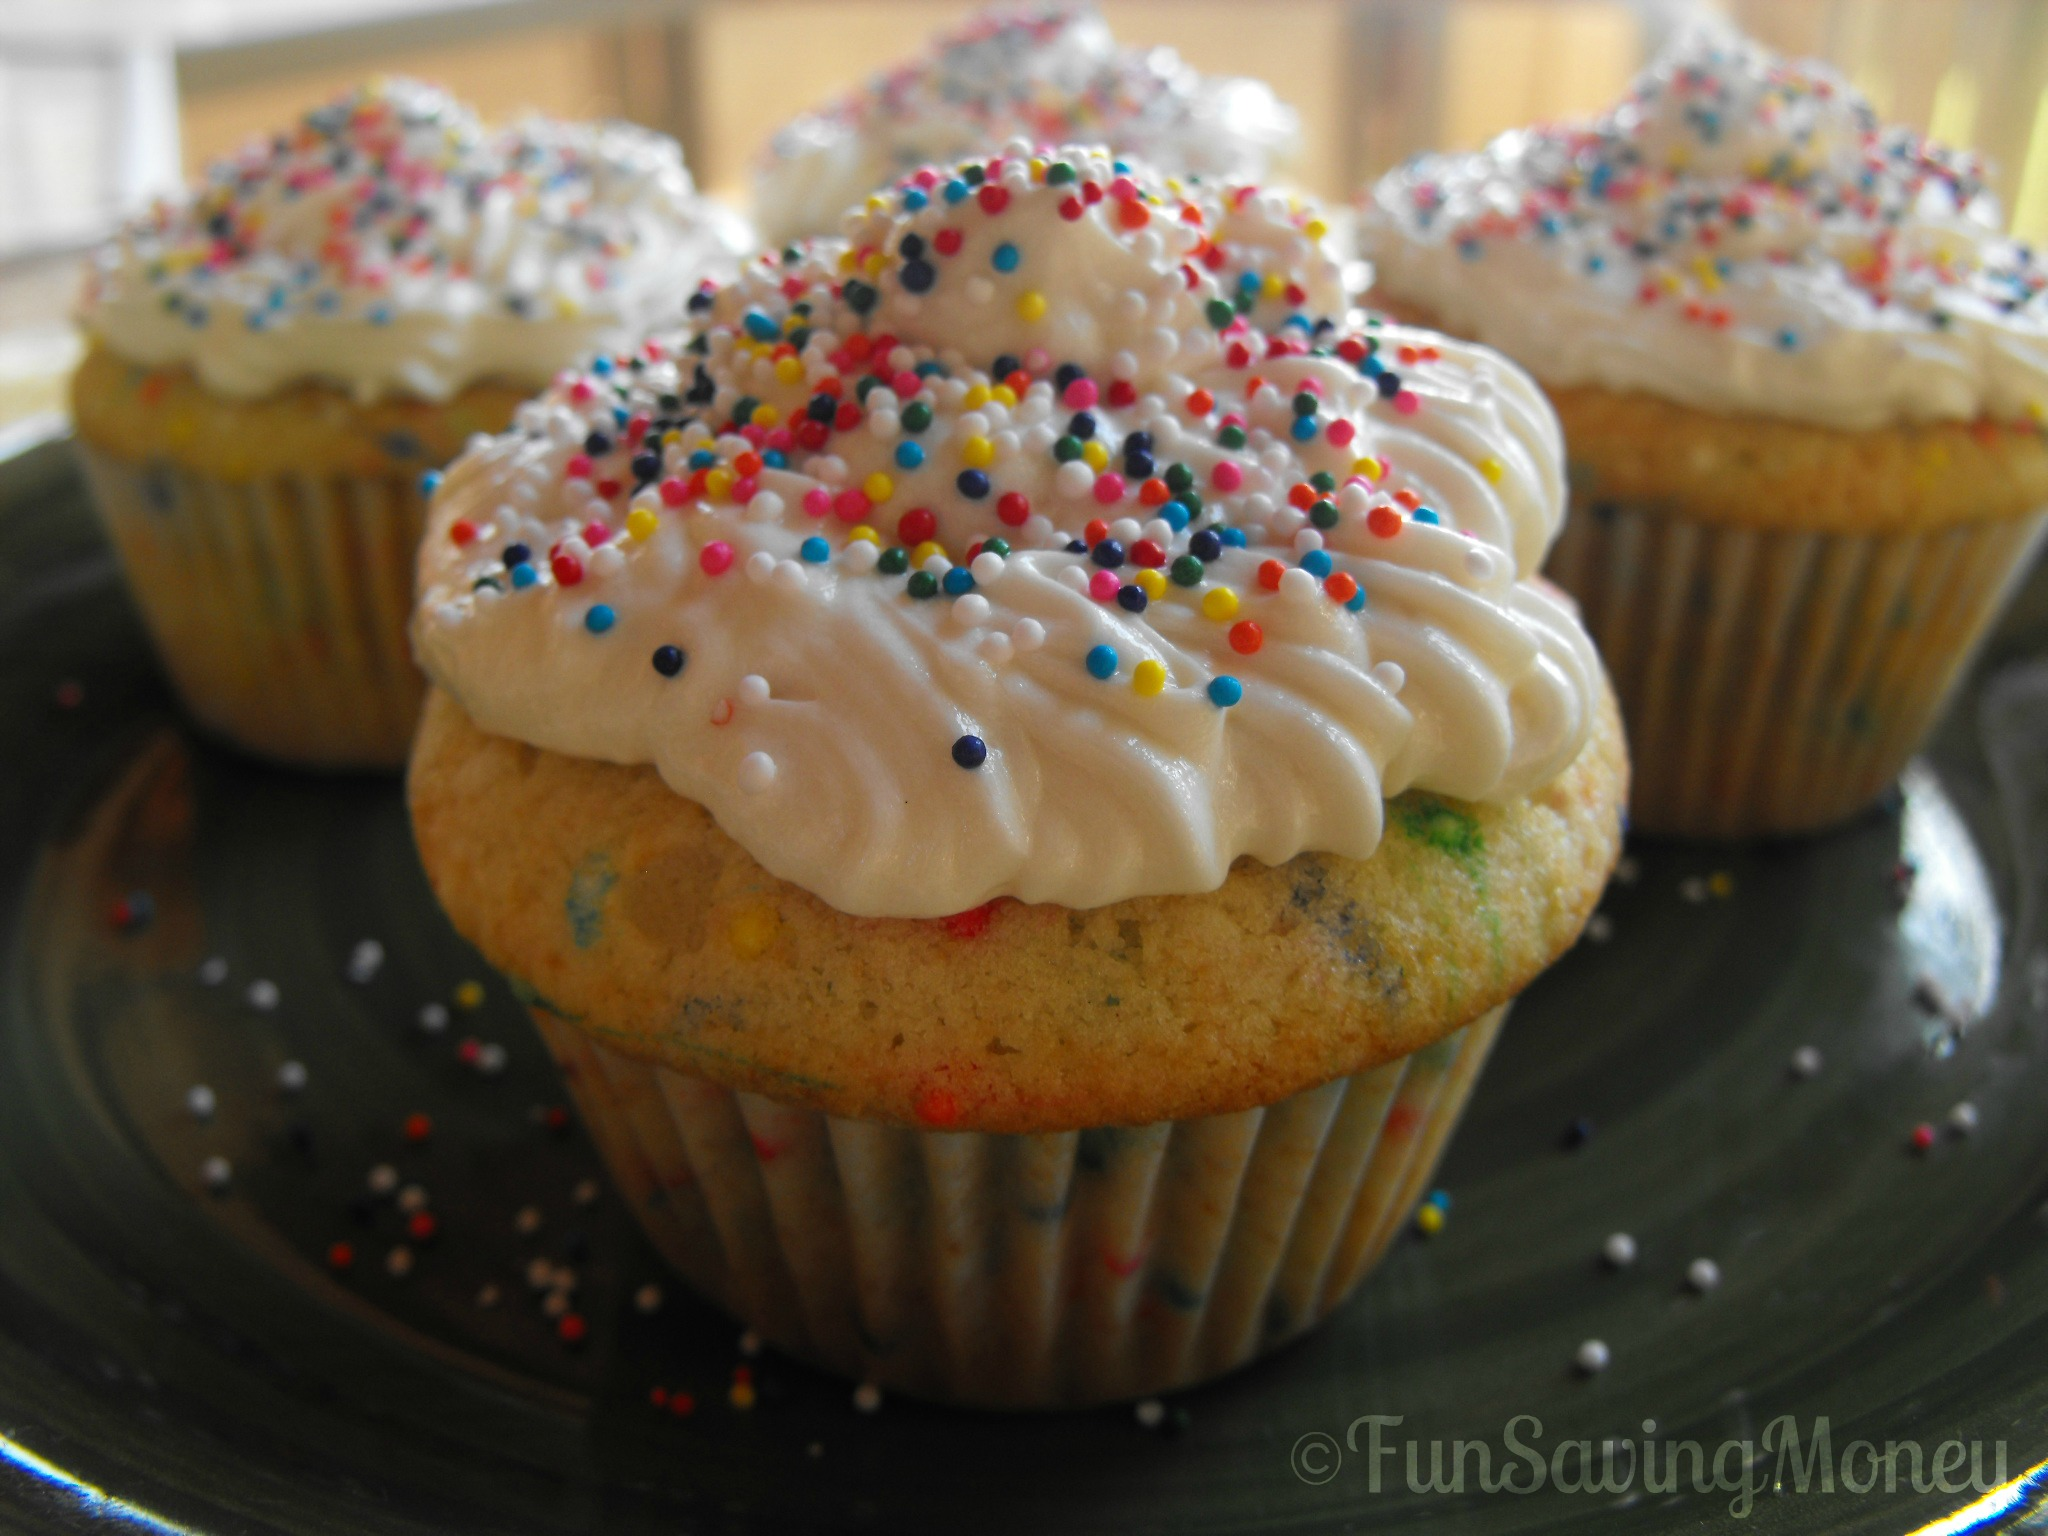 Homemade Funfetti Cupcakes With ButterCream Frosting Recipe